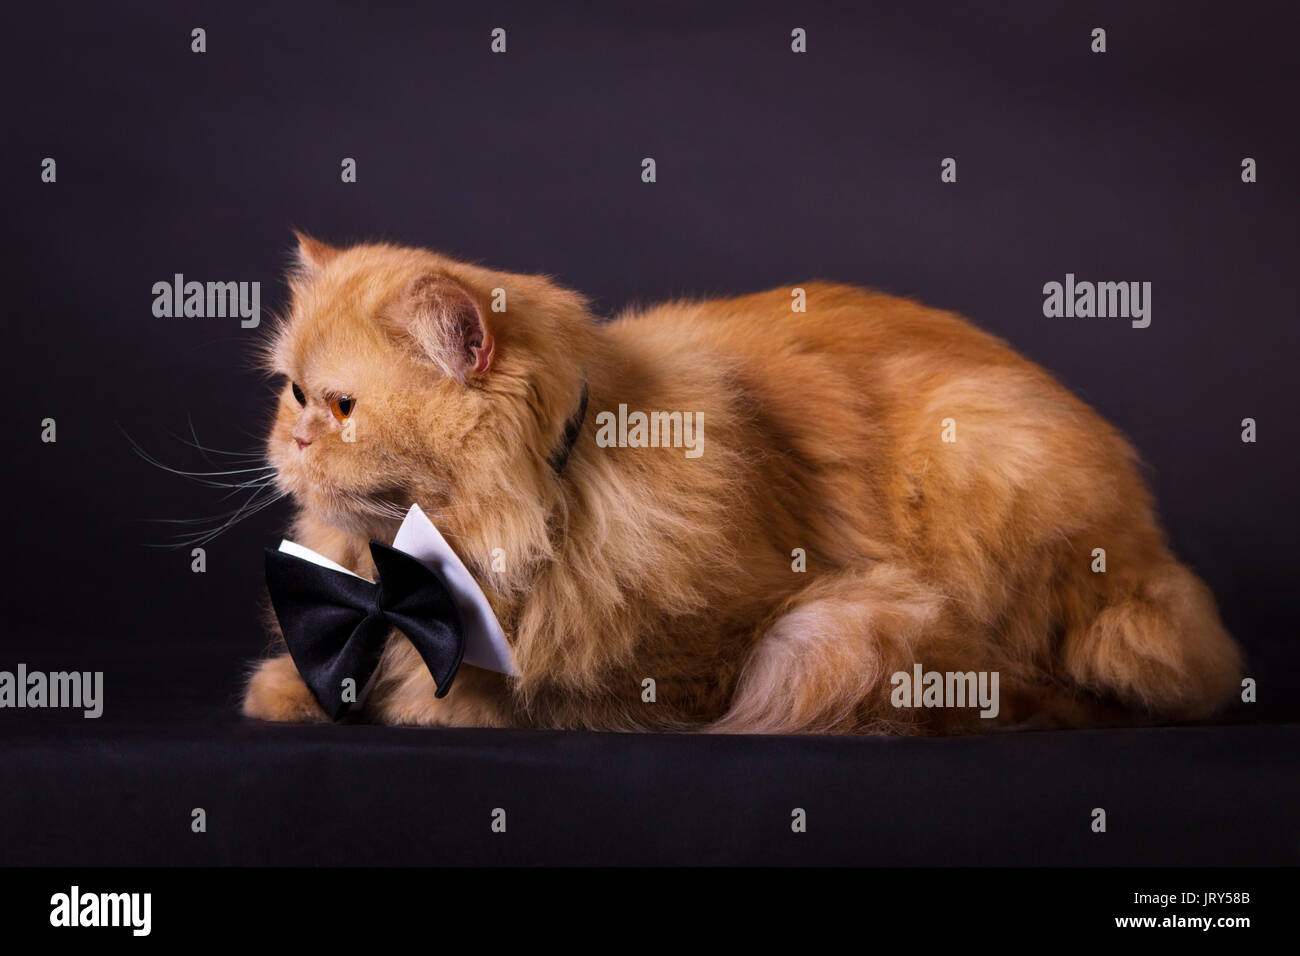 Orange persian cat with black bow tie on black background - Stock Image